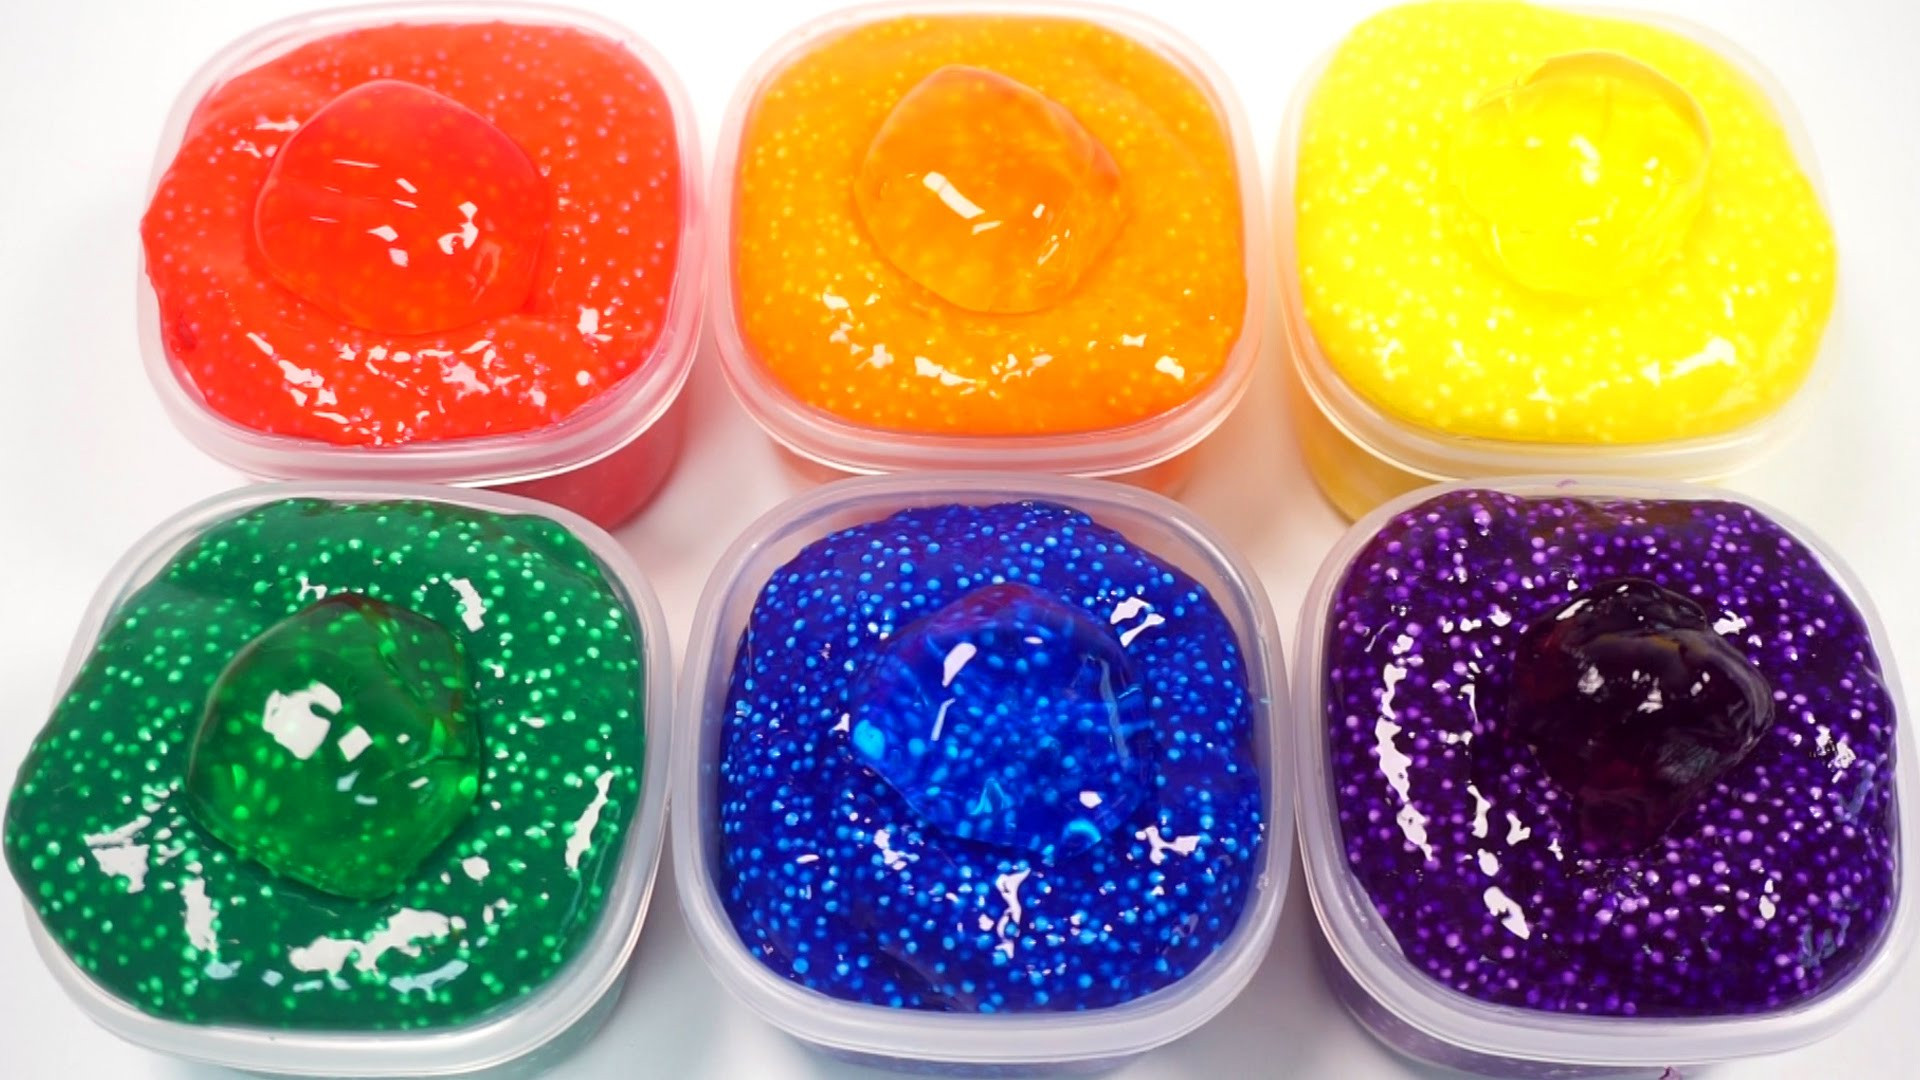 Best ideas about DIY Kids Slime . Save or Pin DIY Kids' Slime Now.